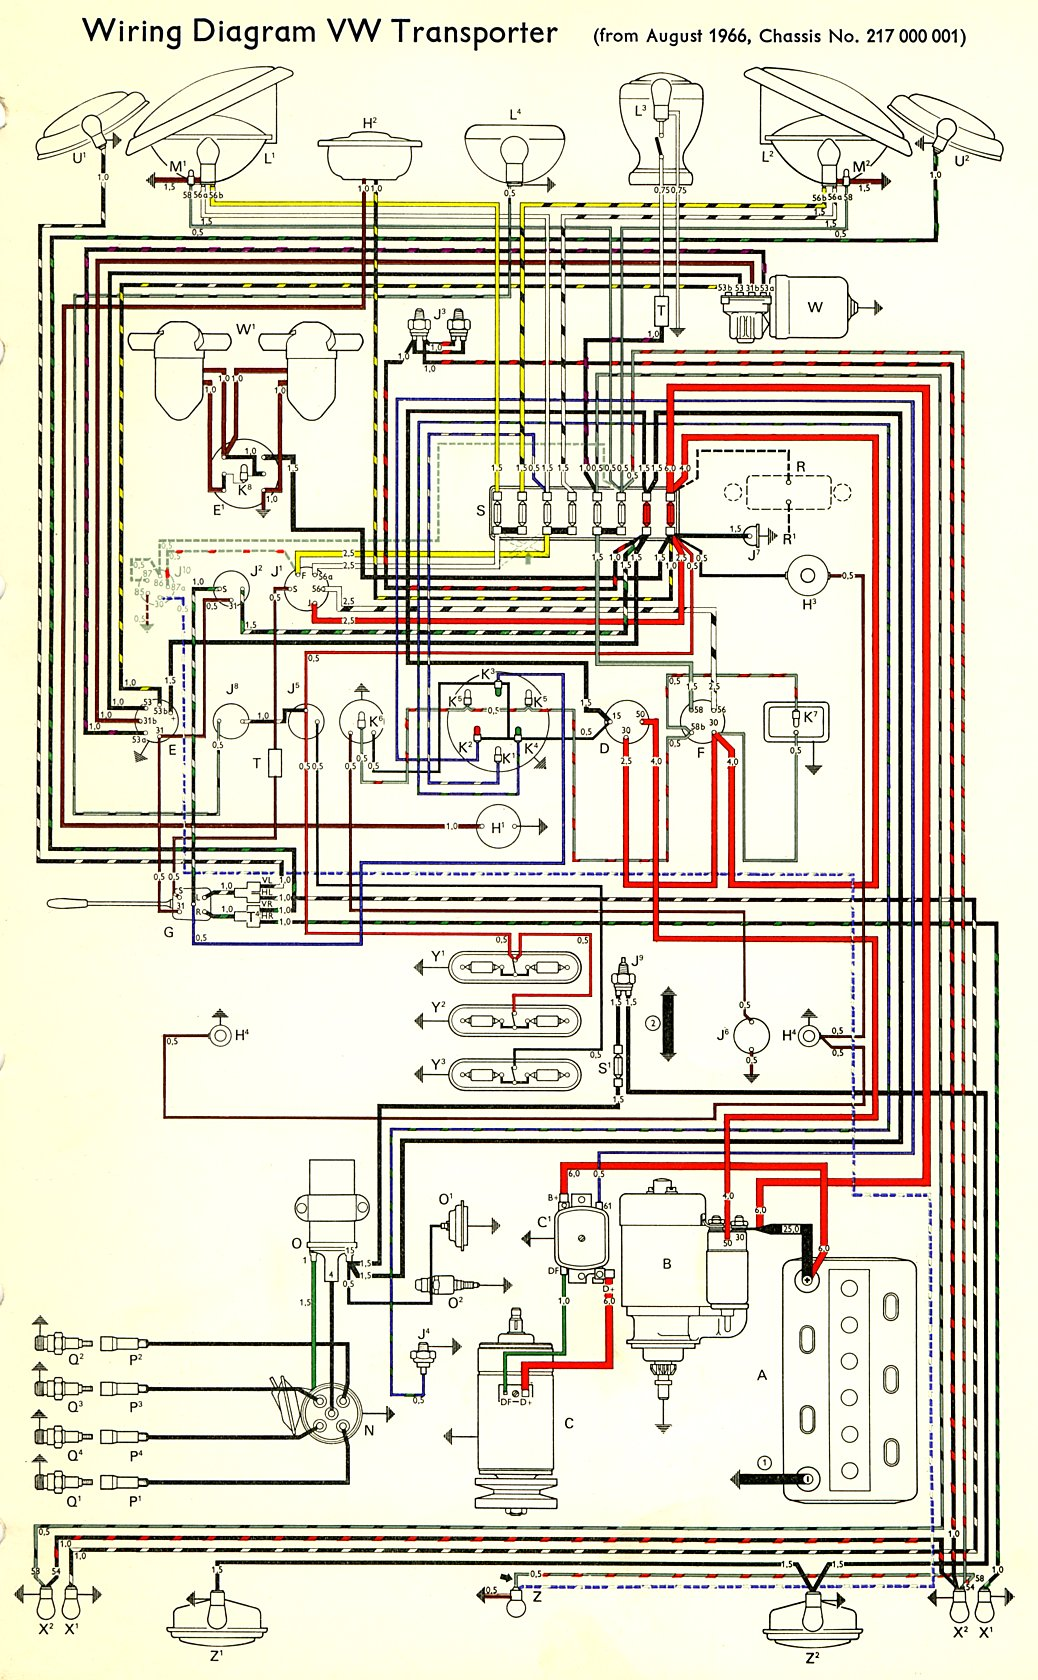 1967 Bus    Wiring       diagram      TheGoldenBug